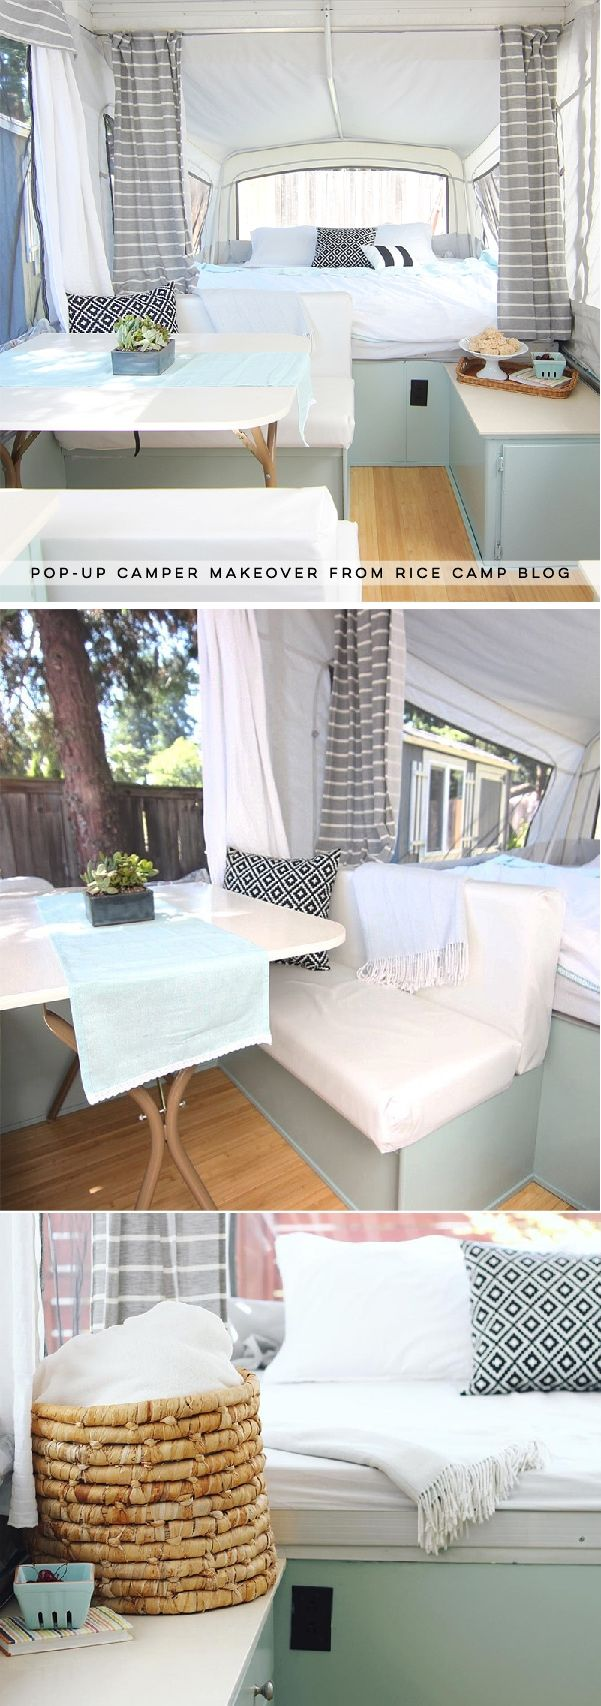 This pop-up camper makeover cost less than $200 and is bright, airy, and ready for summer! #dreampop